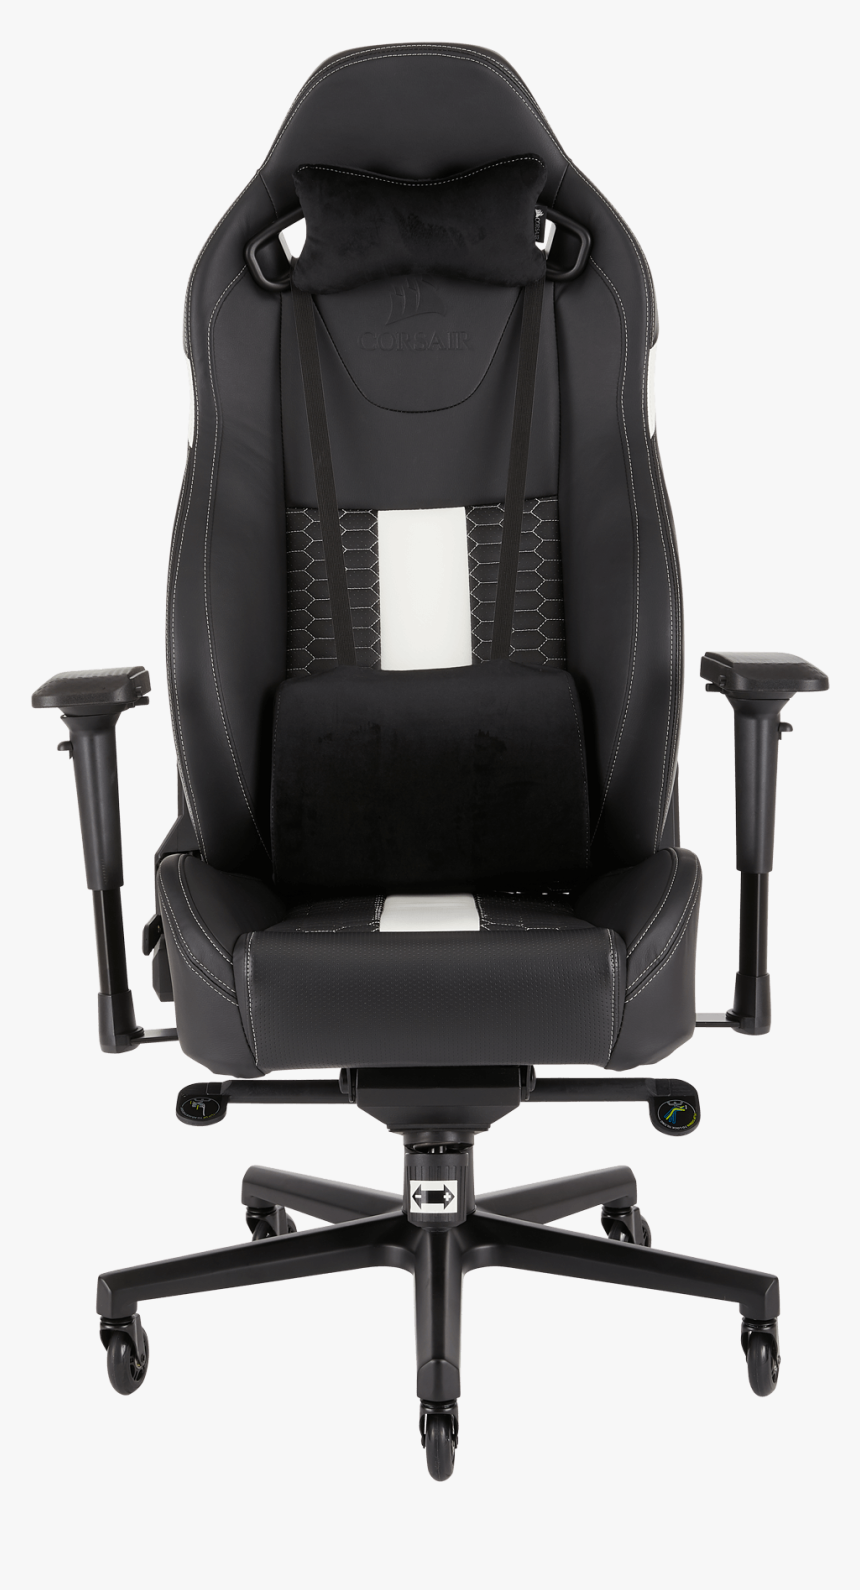 Gaming Chair Png - Gaming Chair 90%, Transparent Png, Free Download